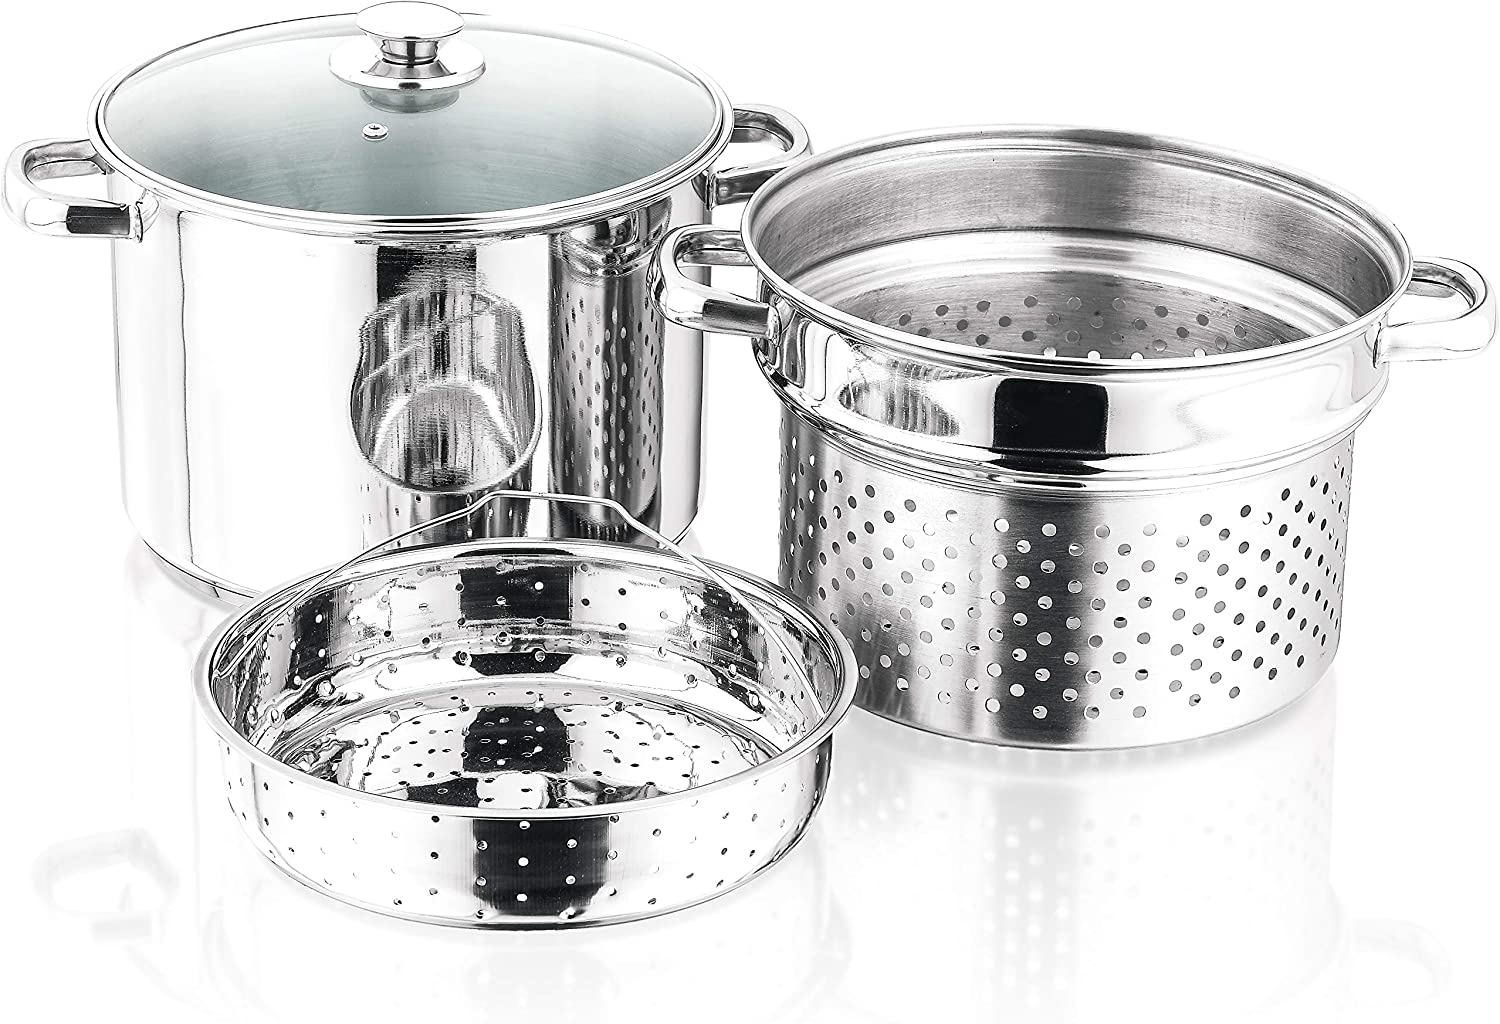 4 Pieces Stainless Steel Pasta Cooker Set with 8 Quart Stock Pot with Steamer Inserts